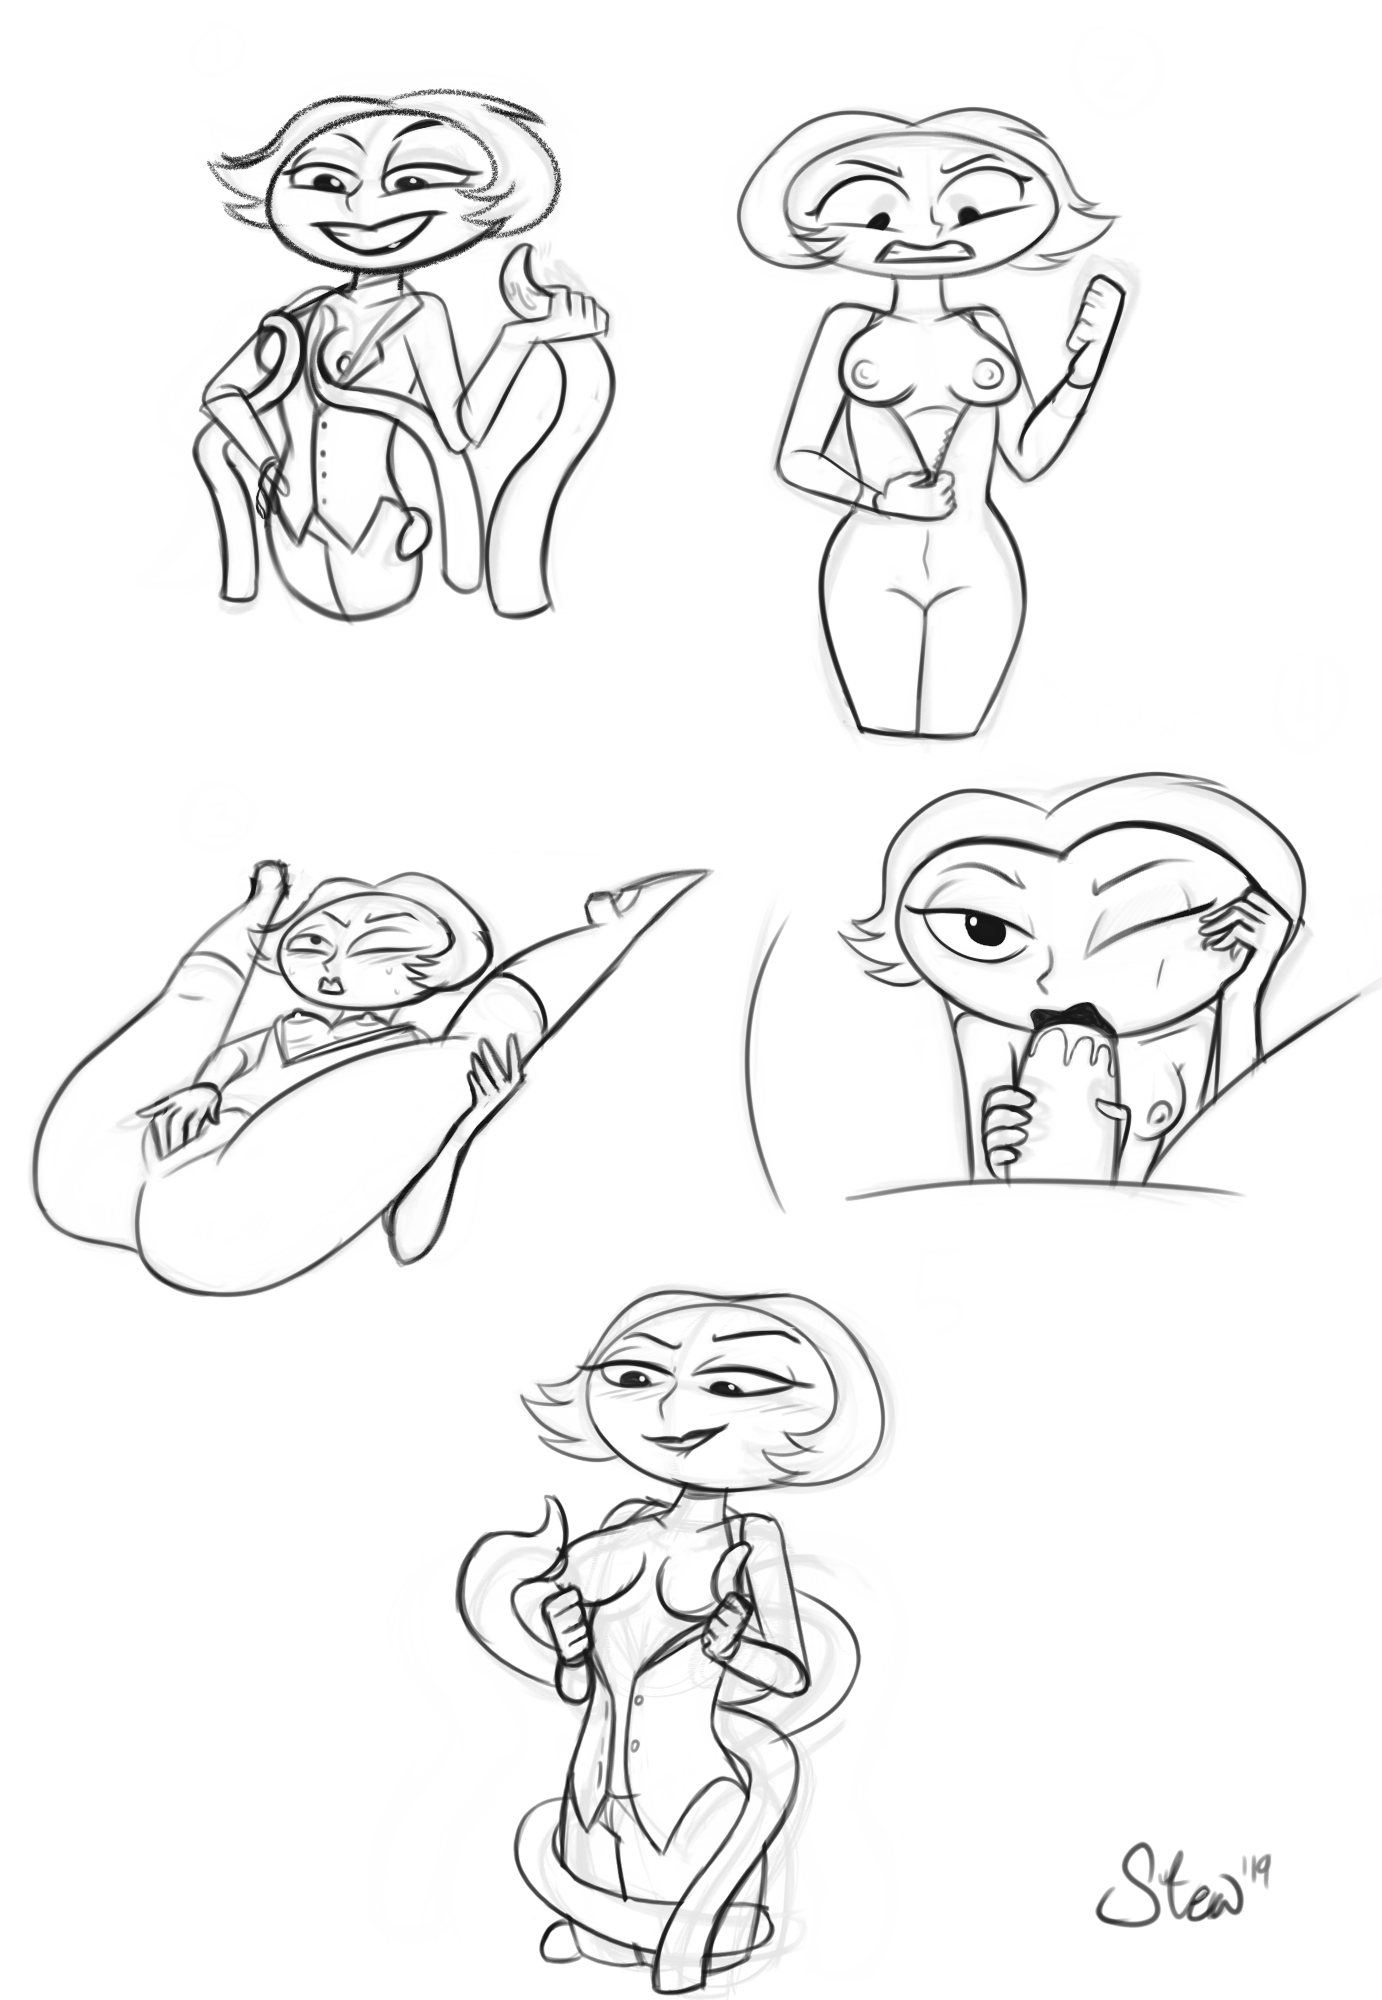 Mrs. X Sketch Page (Commission) by StewsSpicyBlog on